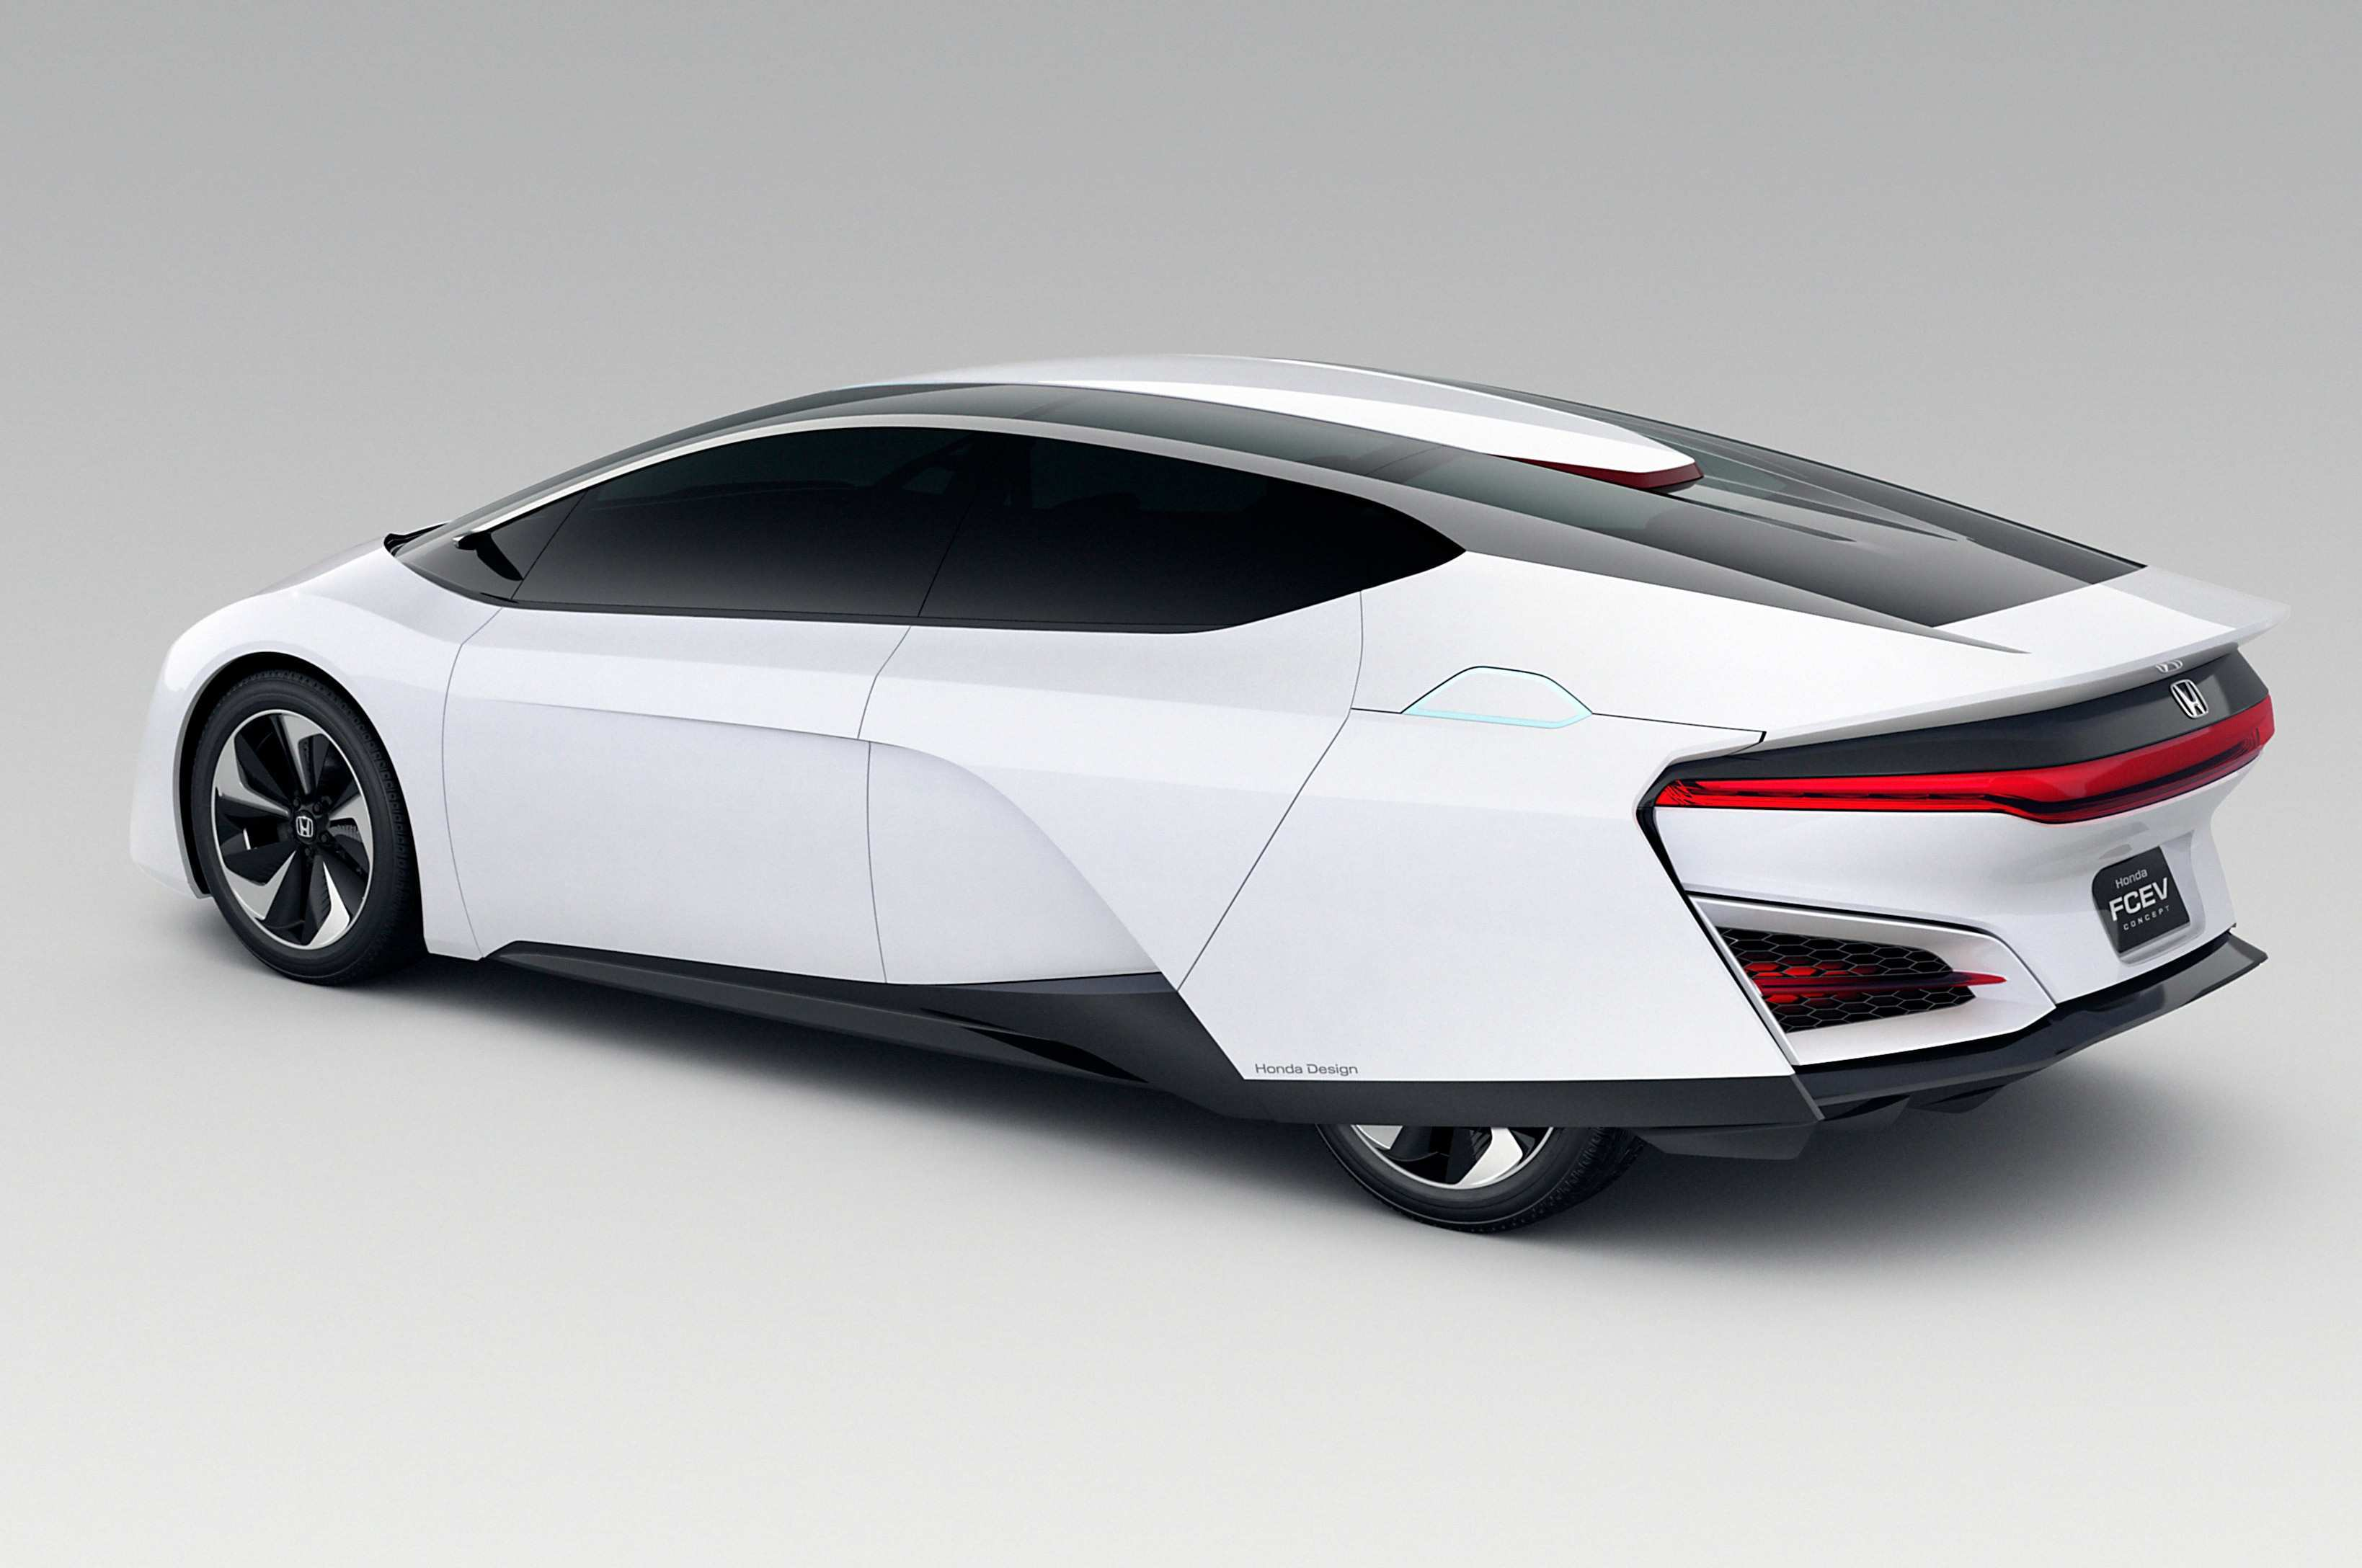 64 Concept of 2020 Honda Fcev Price and Review with 2020 Honda Fcev